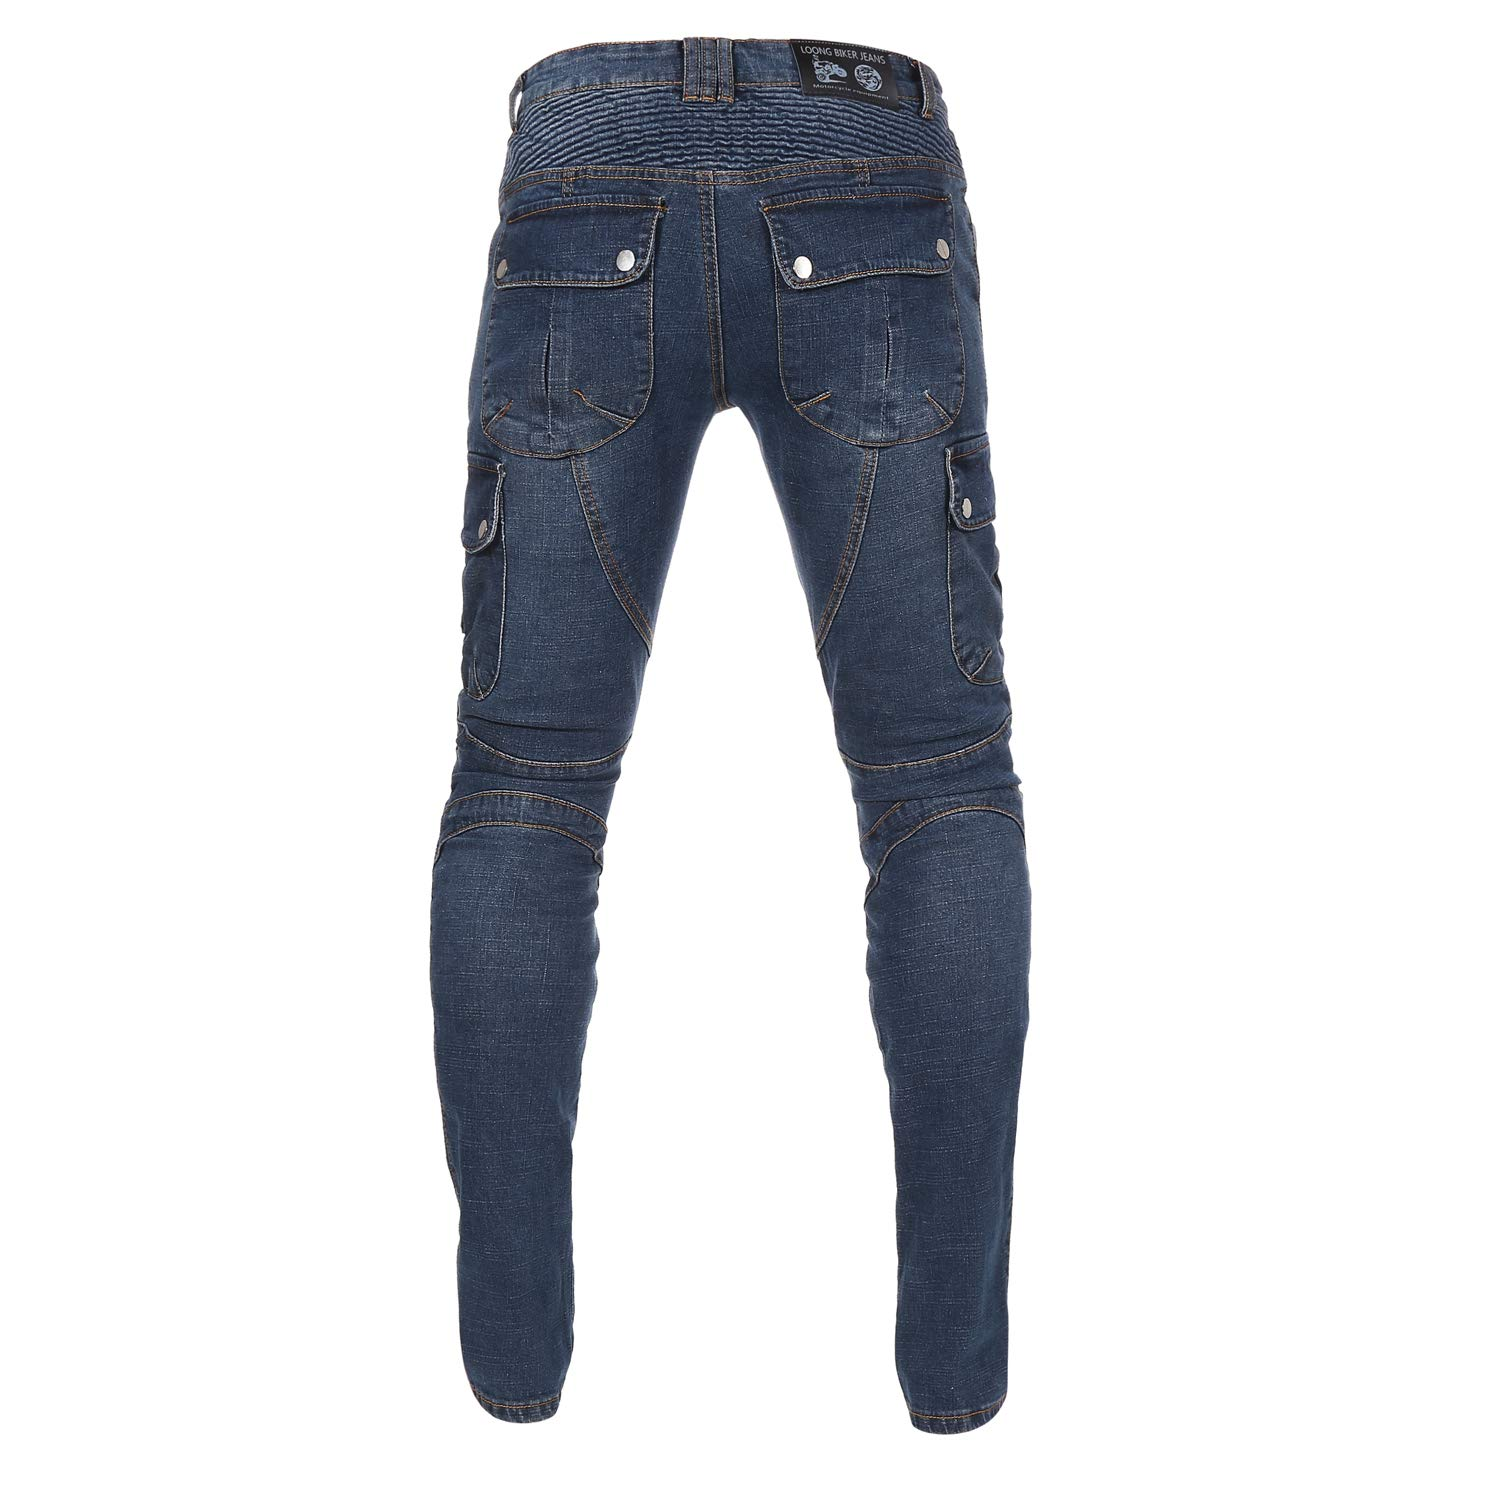 M=30=Waist 32 Mens Motorcycle Motorbike Riding Jeans with Lining CE Approved Overpants